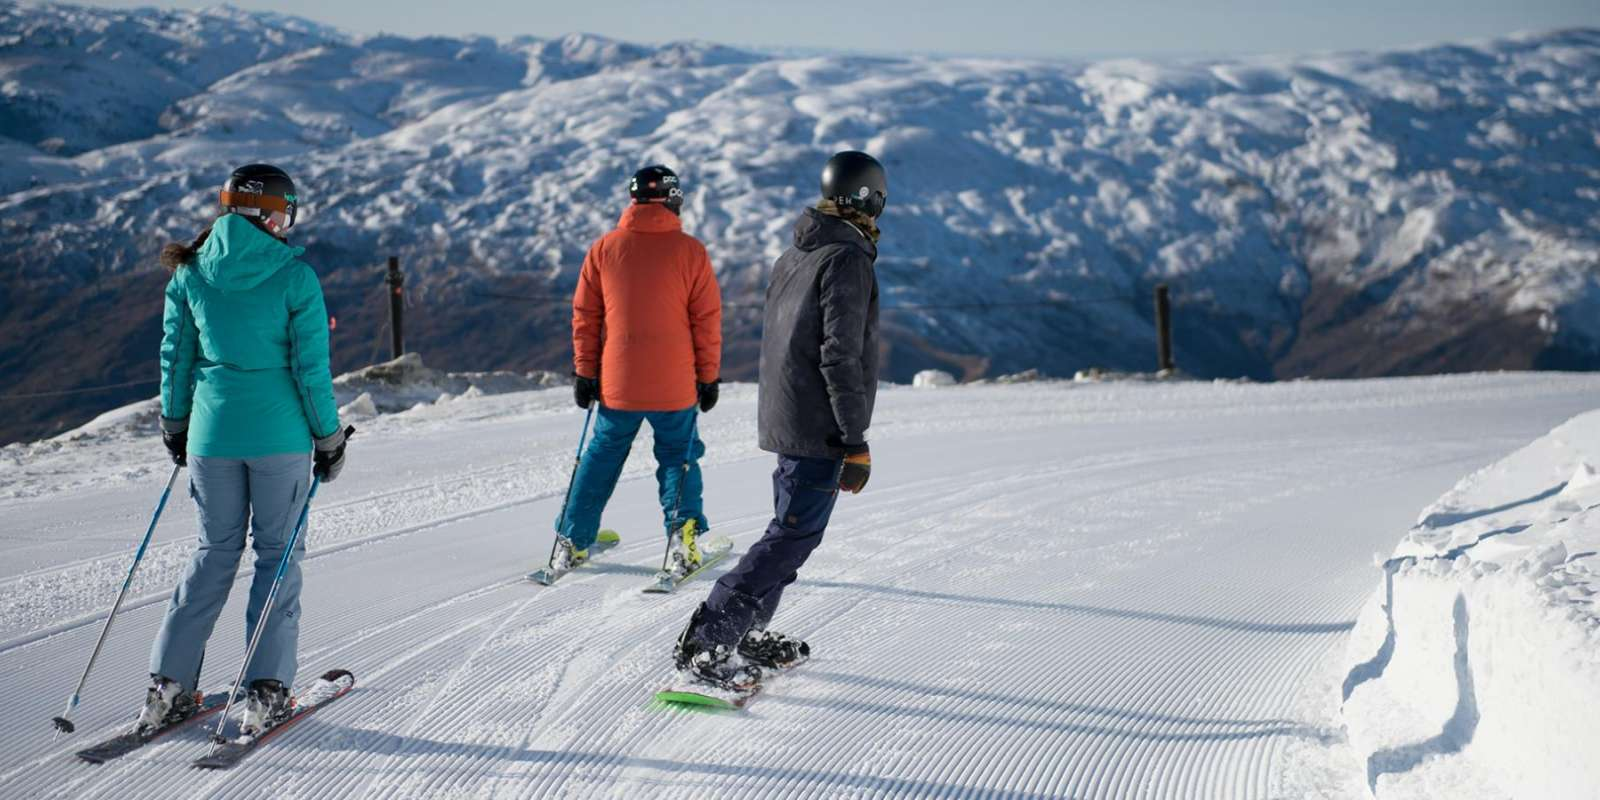 Skiing & Snowboarding at Cardrona Alpine Resort